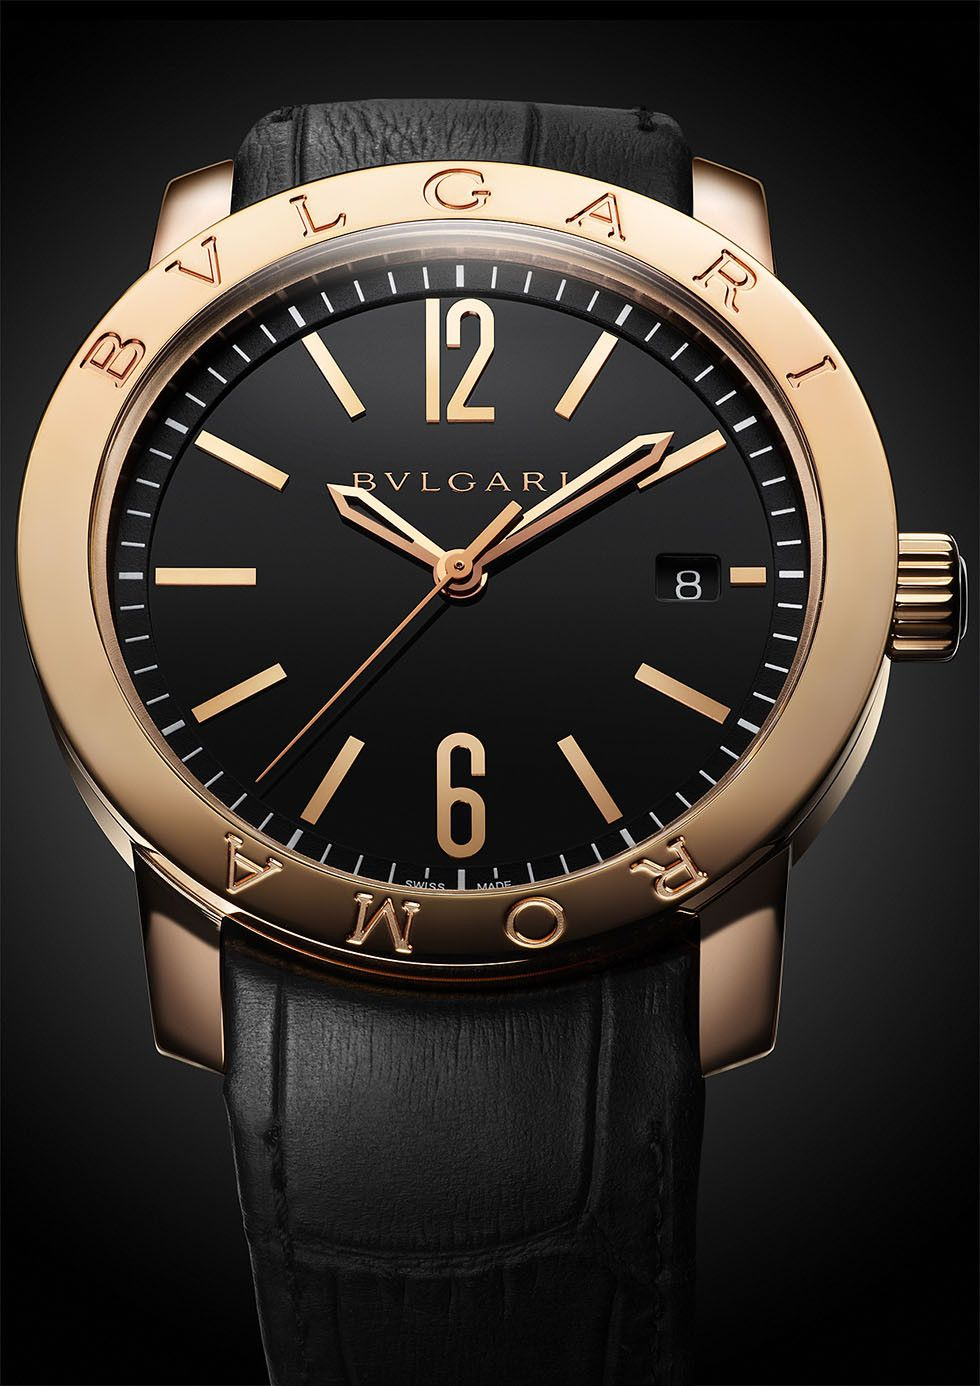 Bulgari watches luxury watches and male fashion